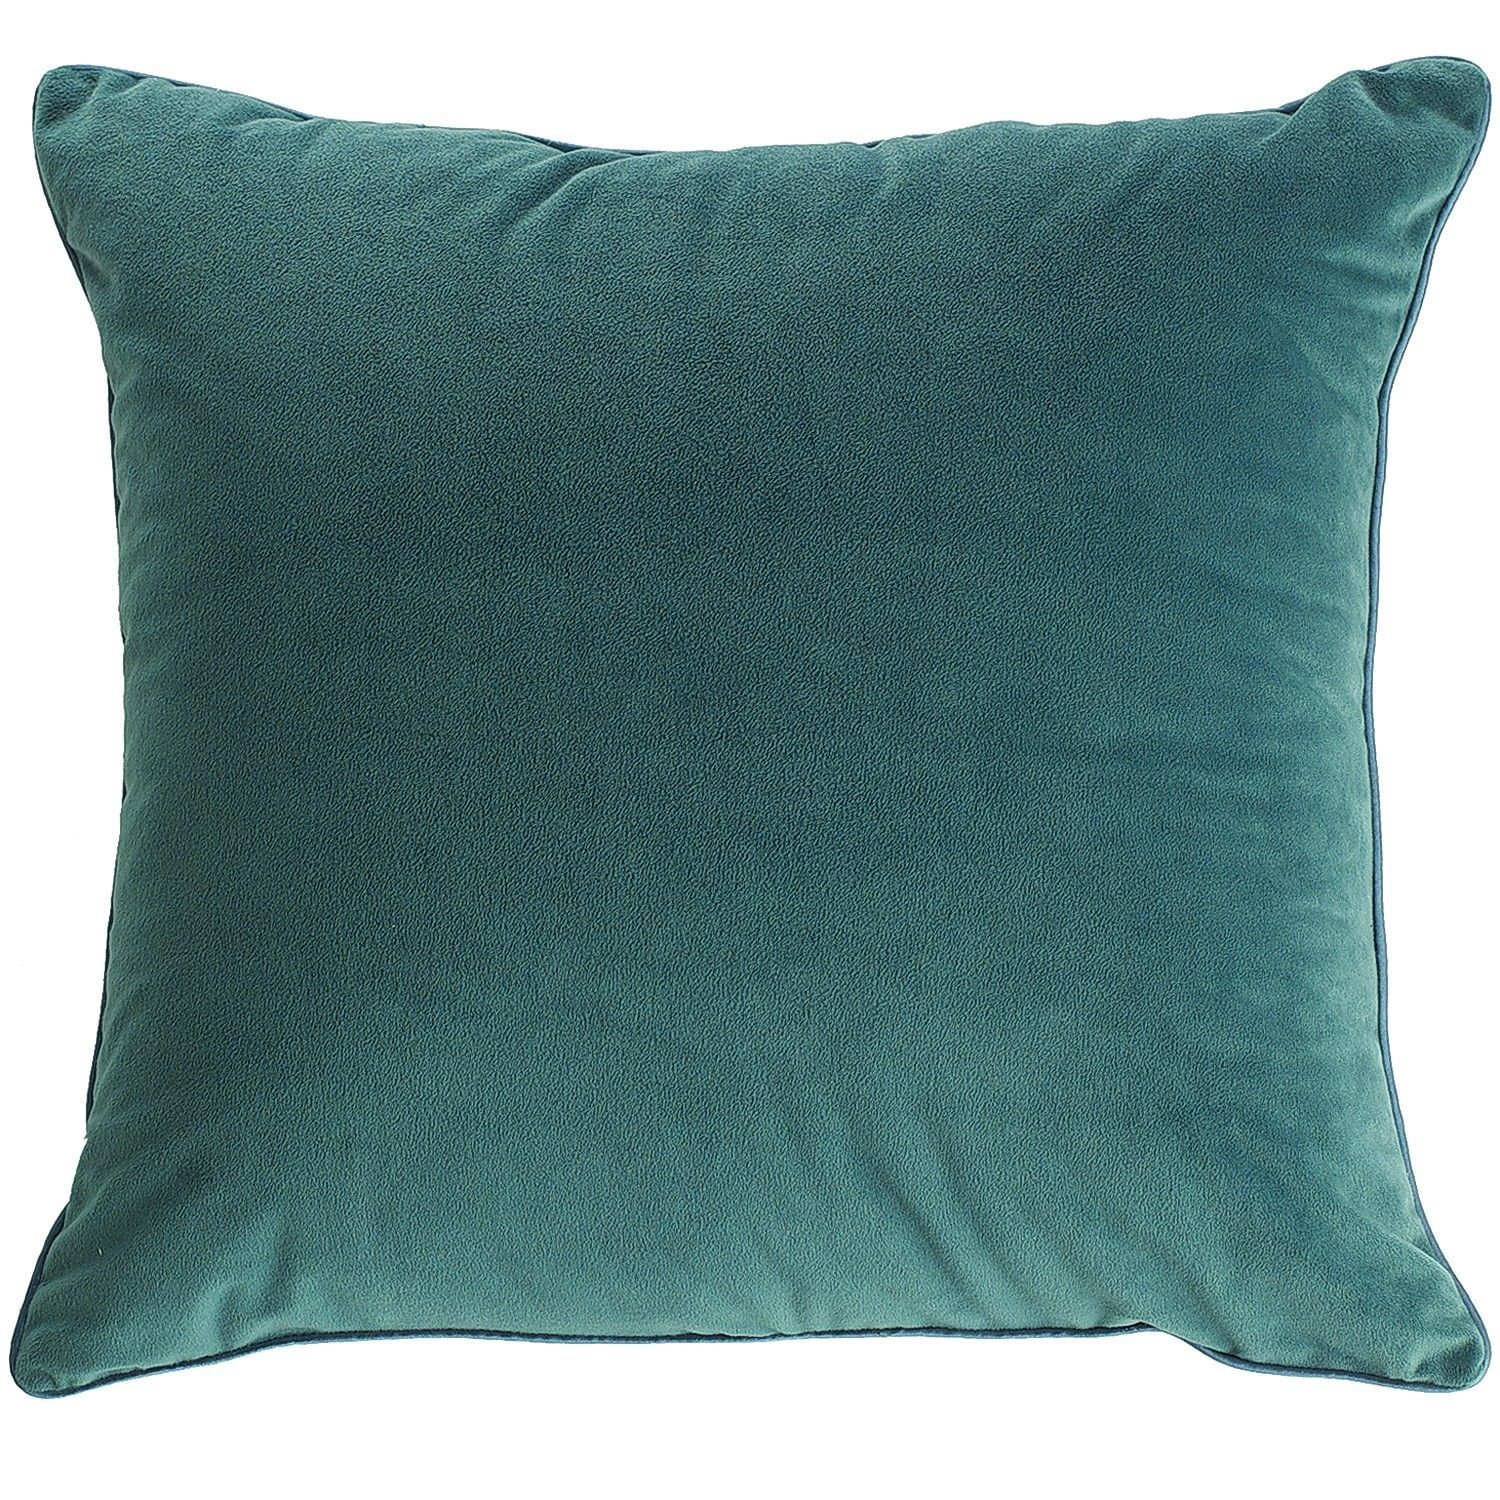 20x20 Shaded Spruce Pillow | pier1 $17